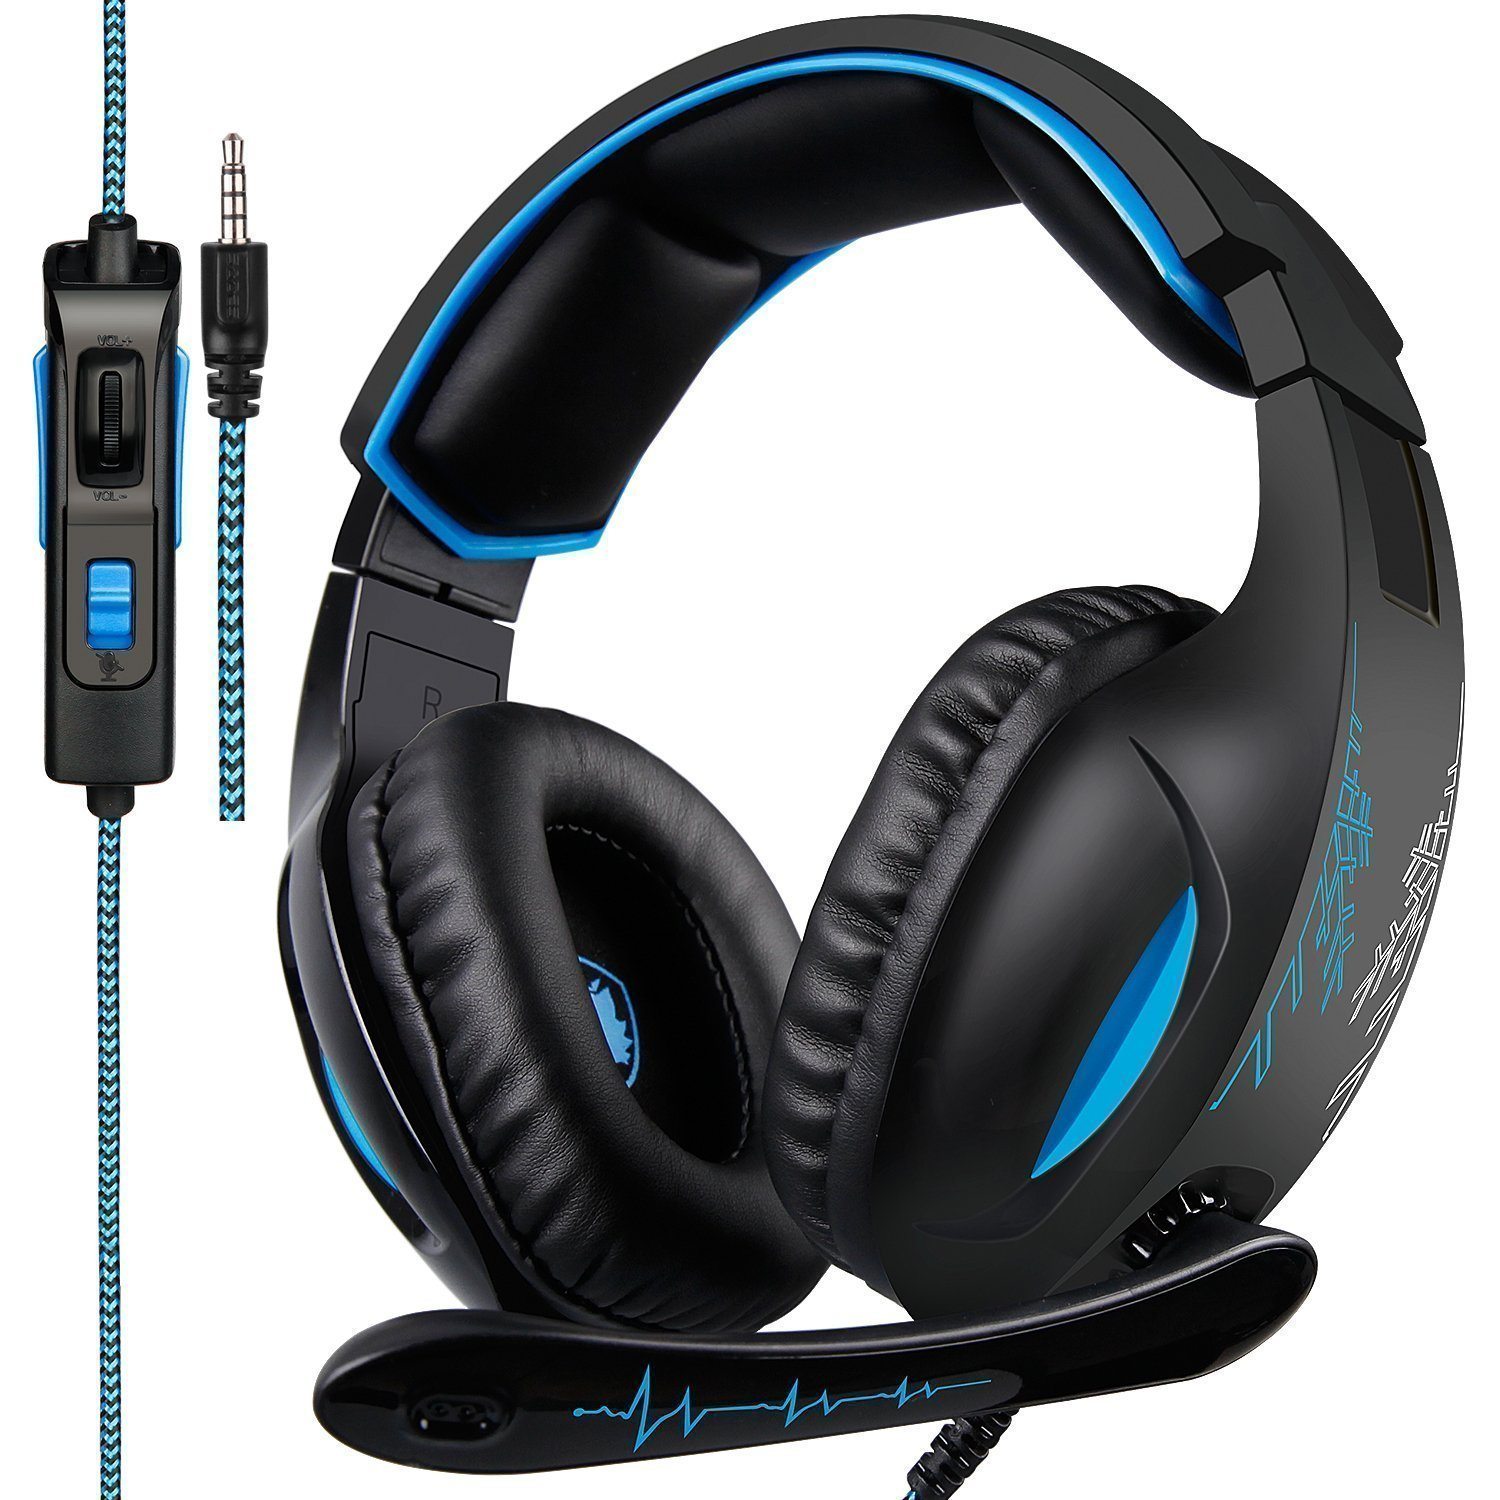 SADES Headset Playstation Headphones Control